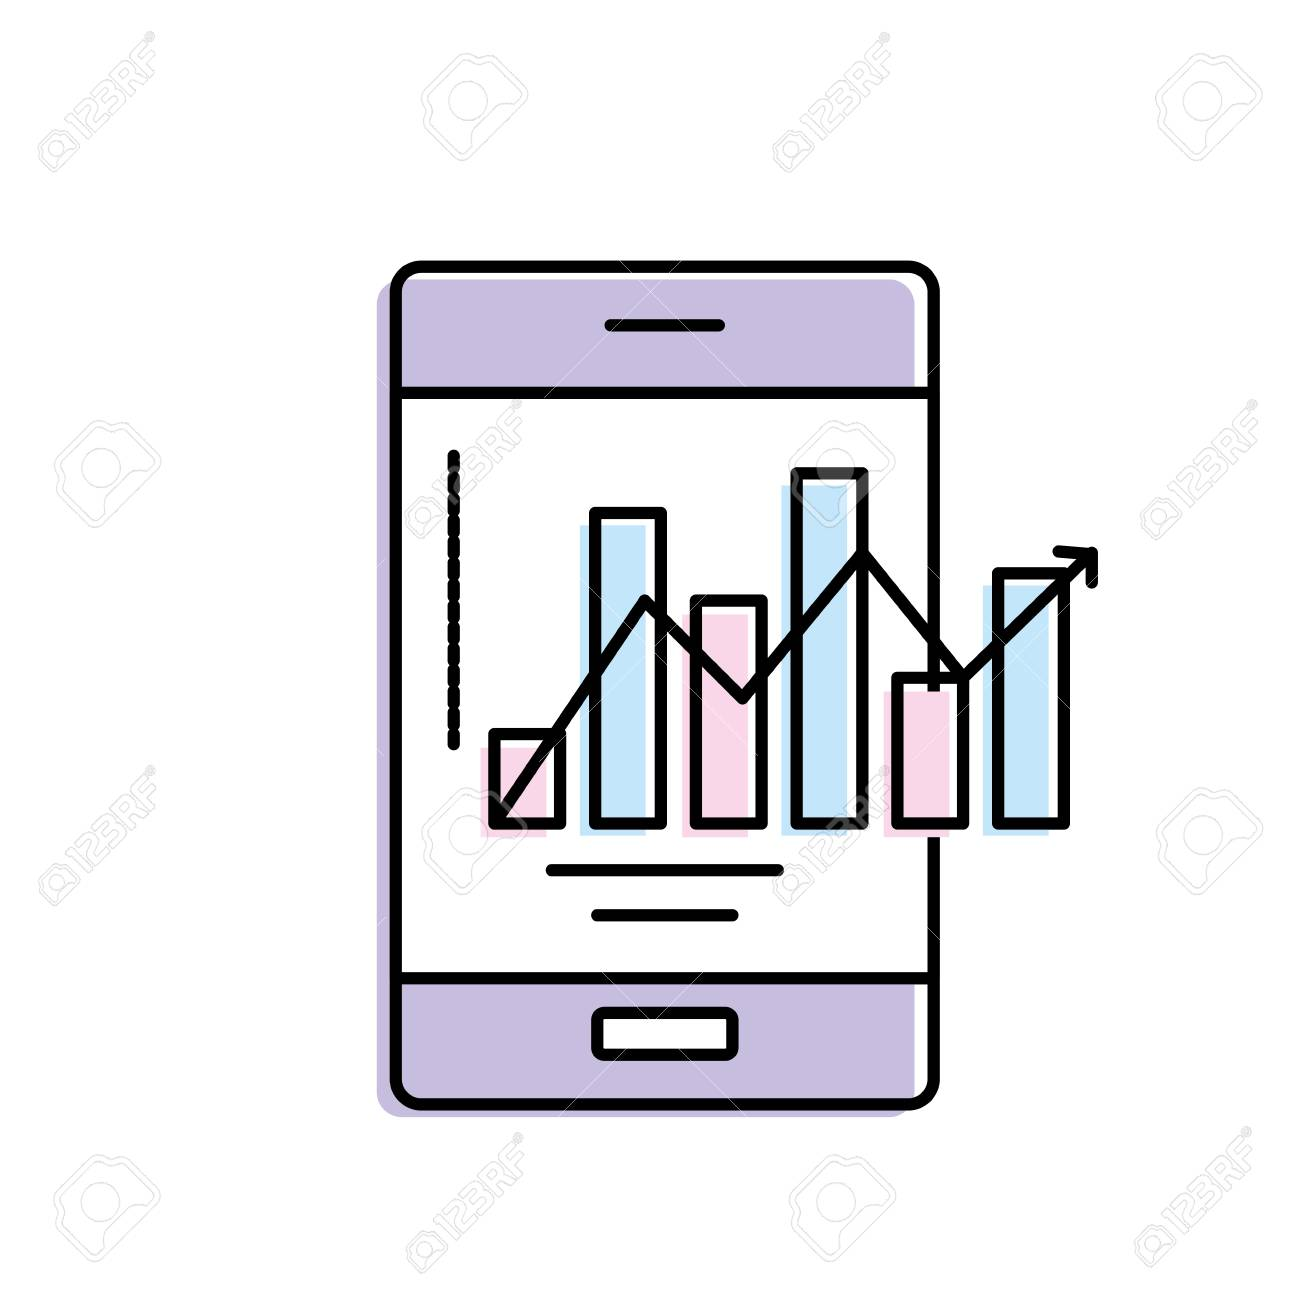 Smartphone Technology With Statistics Bar Diagram Royalty Free